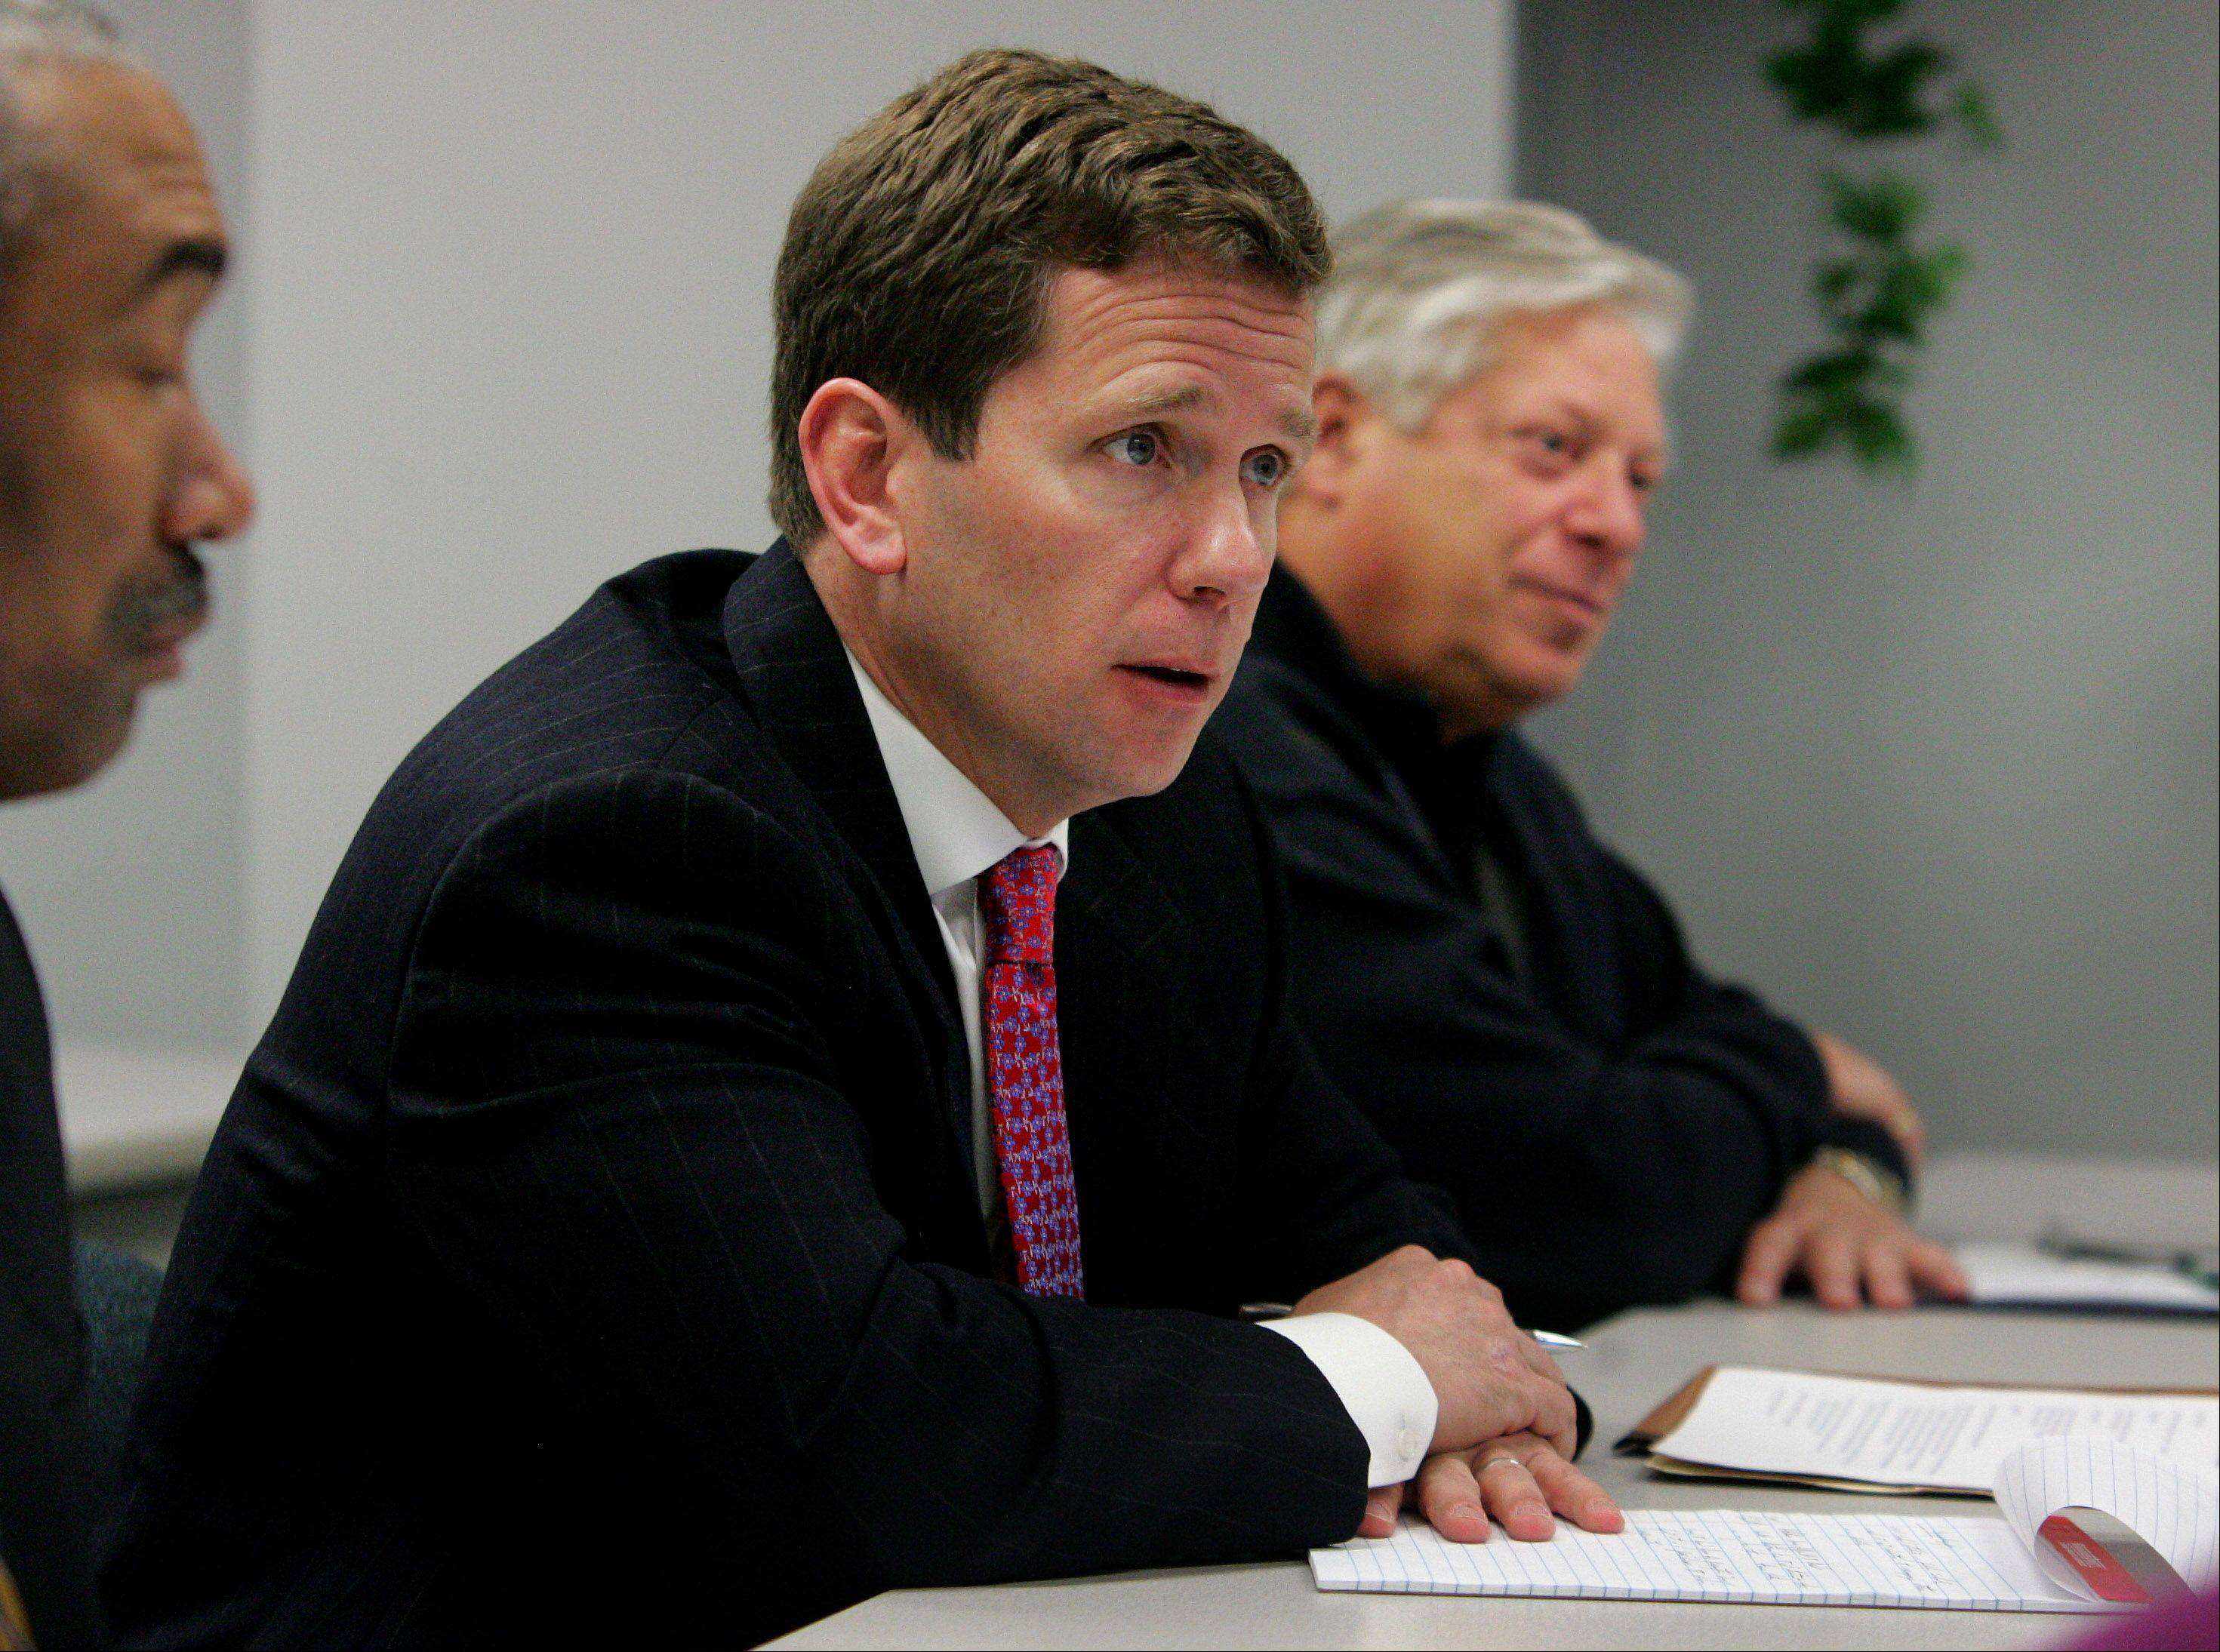 10th District U.S. Congressman Robert J. Dold is part of a congressional caucus working to curb the prescription drug abuse epidemic. He's pictured here earlier this year at a round-table discussion concerning the dangers of heroin in Lake County. School officials, law enforcement agencies, and substance abuse authorities attended the session.